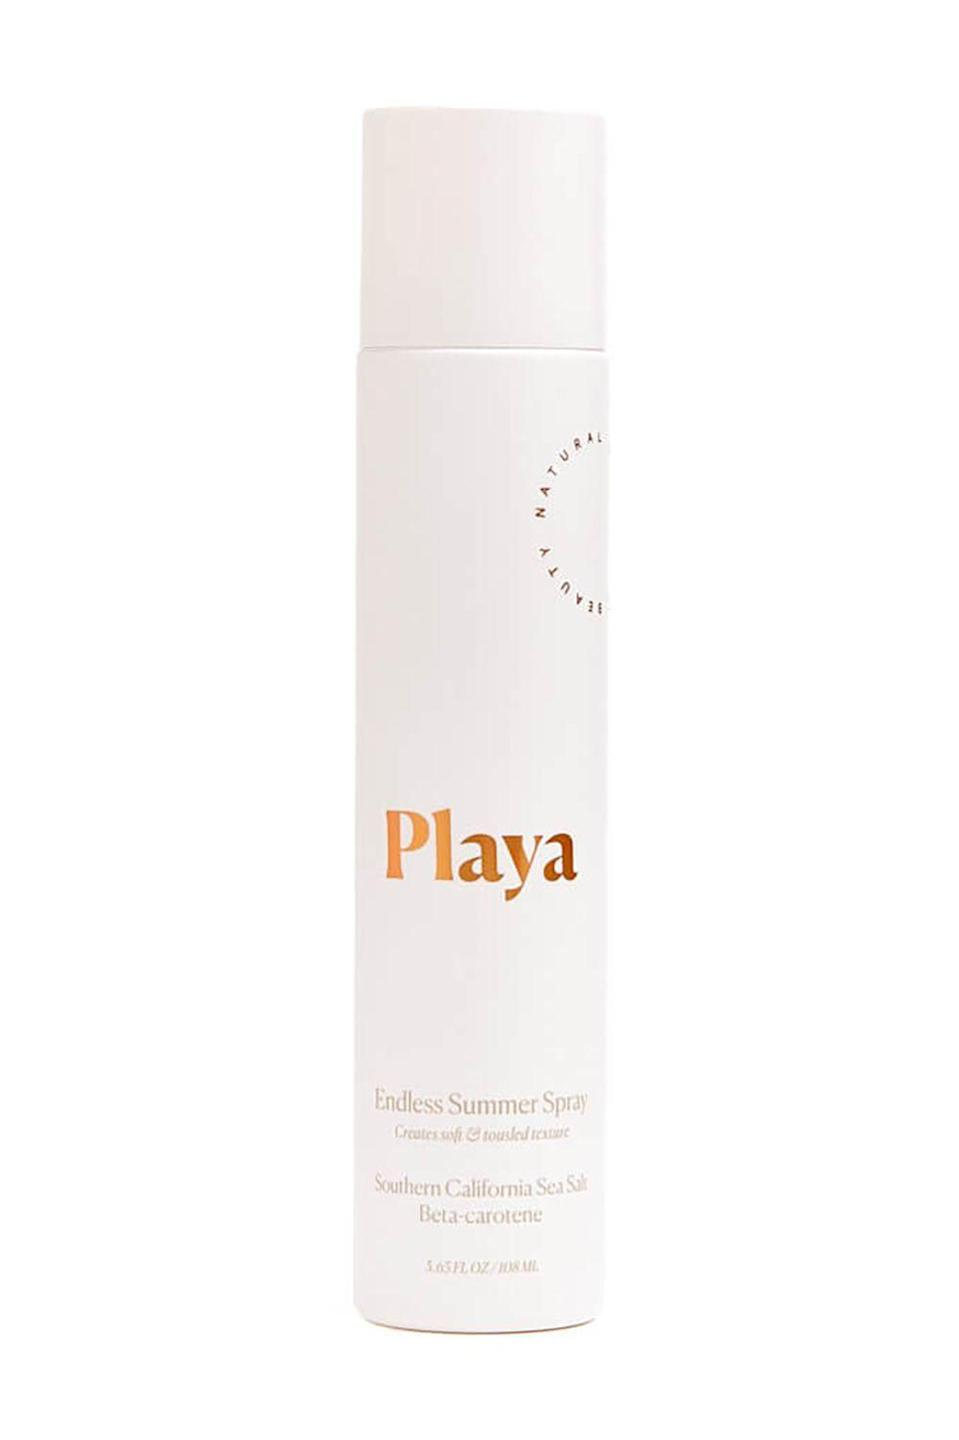 """<p><strong>Playa</strong></p><p>amazon.com</p><p><strong>$40.00</strong></p><p><a href=""""https://www.amazon.com/dp/B0765C4G89?tag=syn-yahoo-20&ascsubtag=%5Bartid%7C10058.g.2902%5Bsrc%7Cyahoo-us"""" rel=""""nofollow noopener"""" target=""""_blank"""" data-ylk=""""slk:SHOP IT"""" class=""""link rapid-noclick-resp"""">SHOP IT </a></p><p>The name says it all: endless summer spray. This alcohol-free formula uses chia seeds extracts to cloak your hair in a veil of shine that will enhance your curl patten and amp up your volume.</p>"""